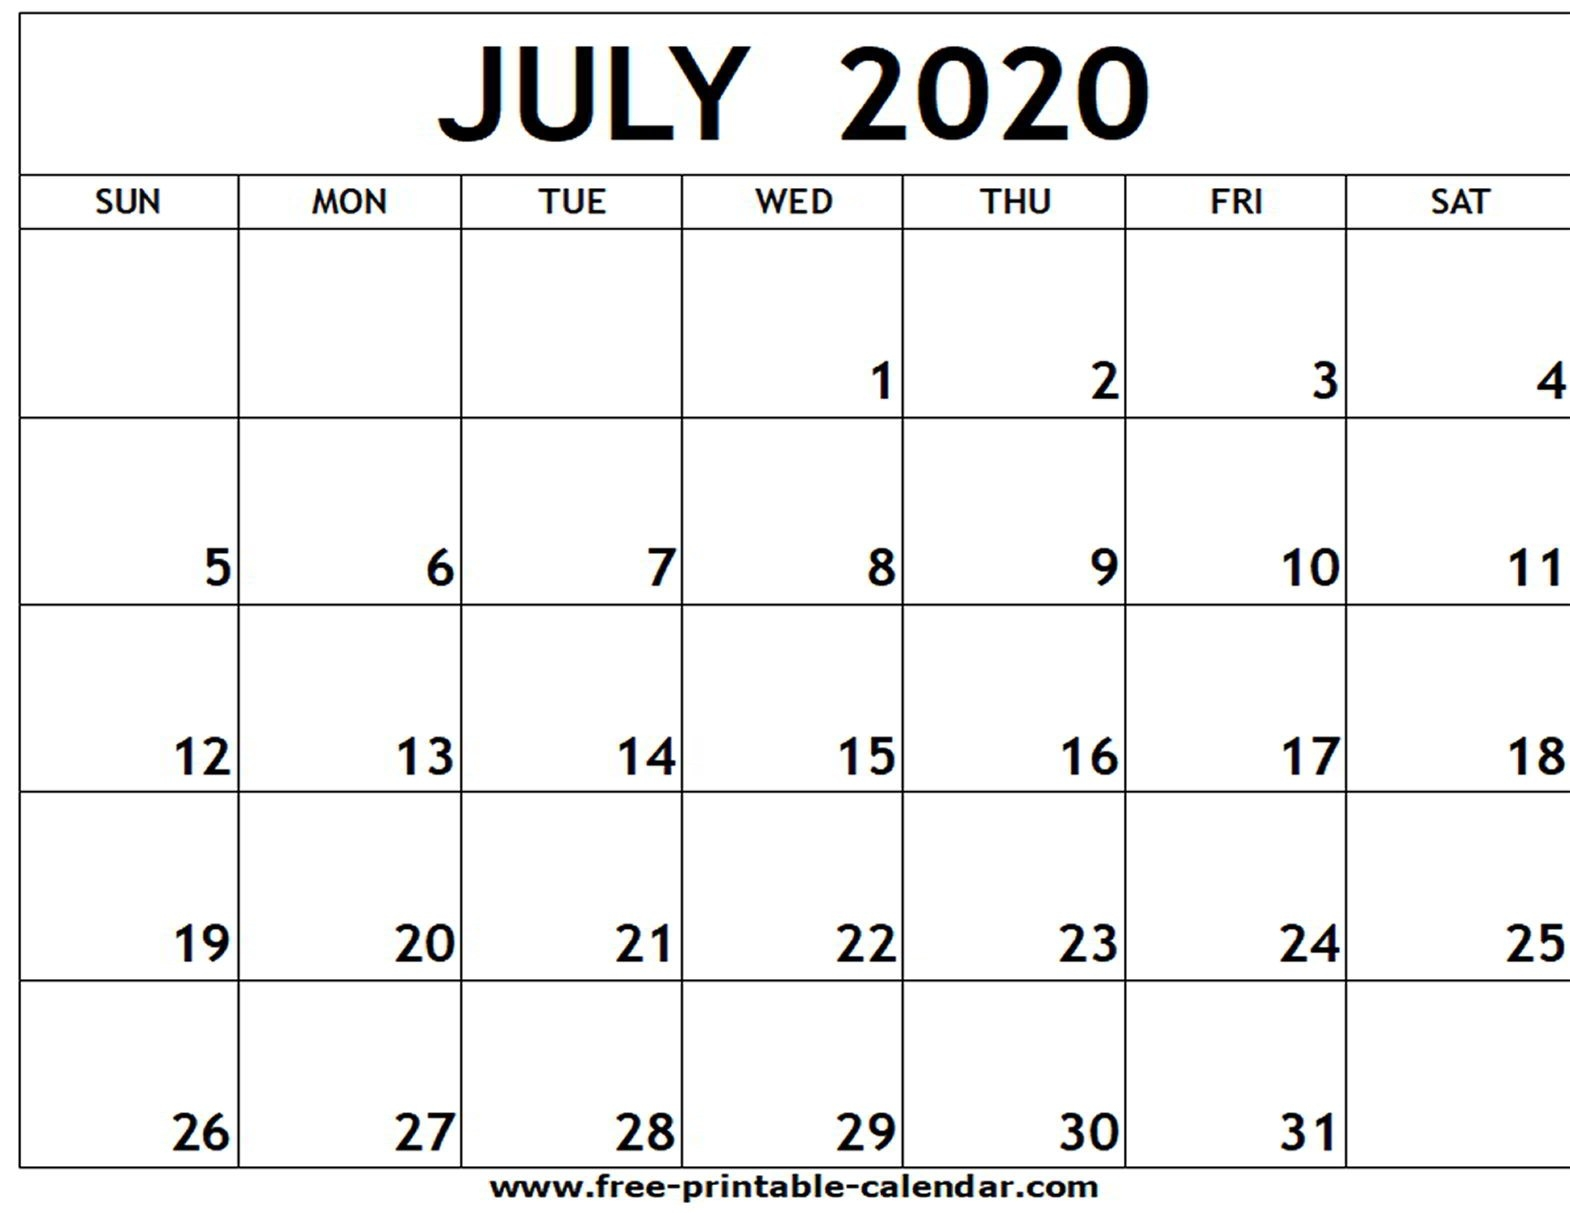 July 2020 Printable Calendar - Free-Printable-Calendar-Print Off Monthly Calender For June And July 2020